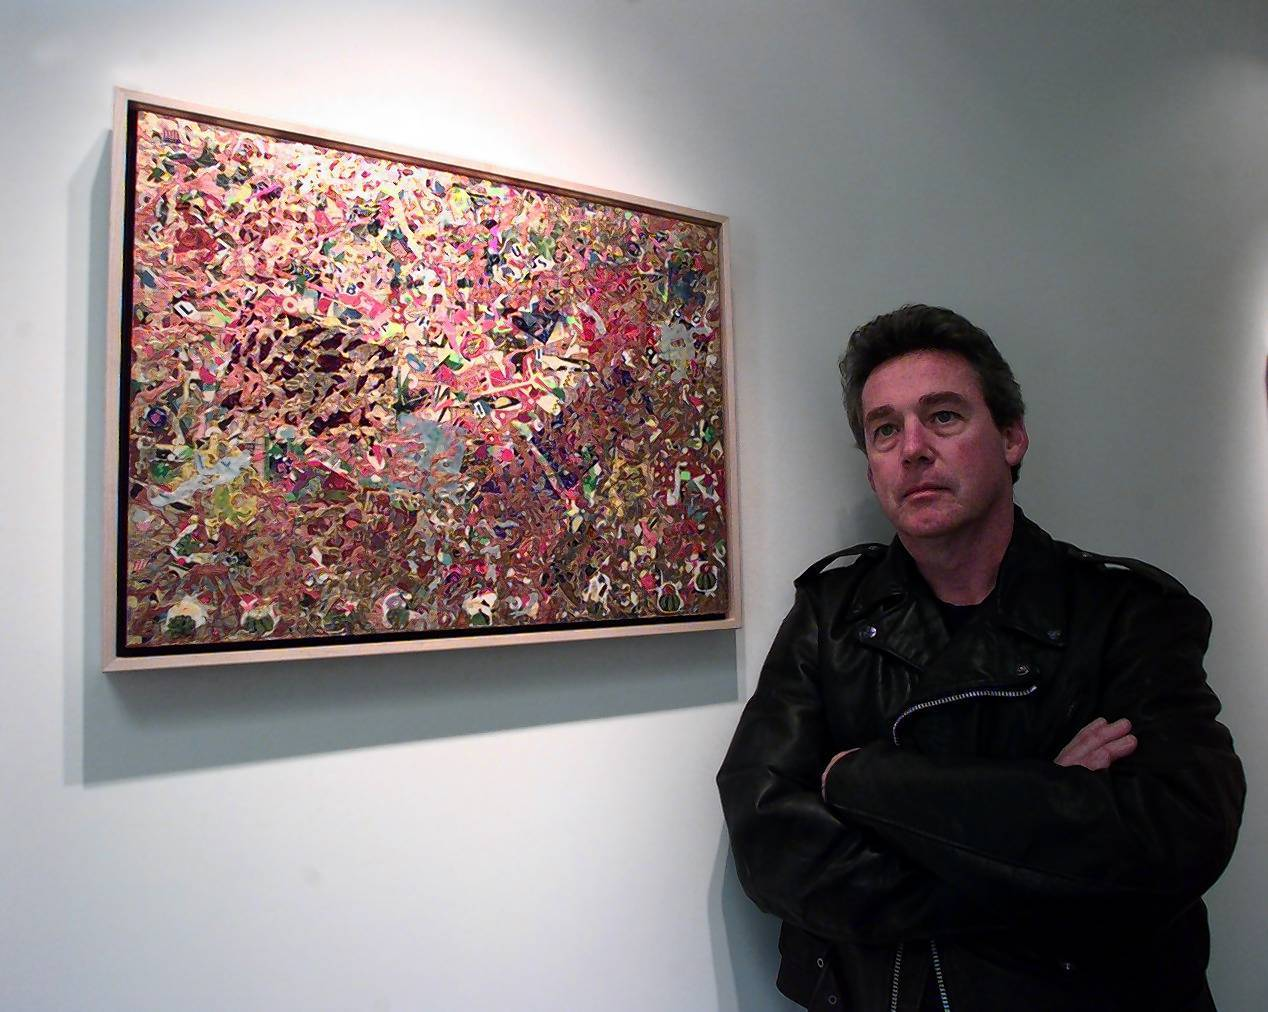 Artist Michael McManus is shown in 1997 in front of one of his paintings at the Peter Blake Gallery in Laguna Beach. McManus, the former chief curator for the Laguna Art Museum and organizer of a major scholarly overview of California Impressionism, has died at the age of 60.